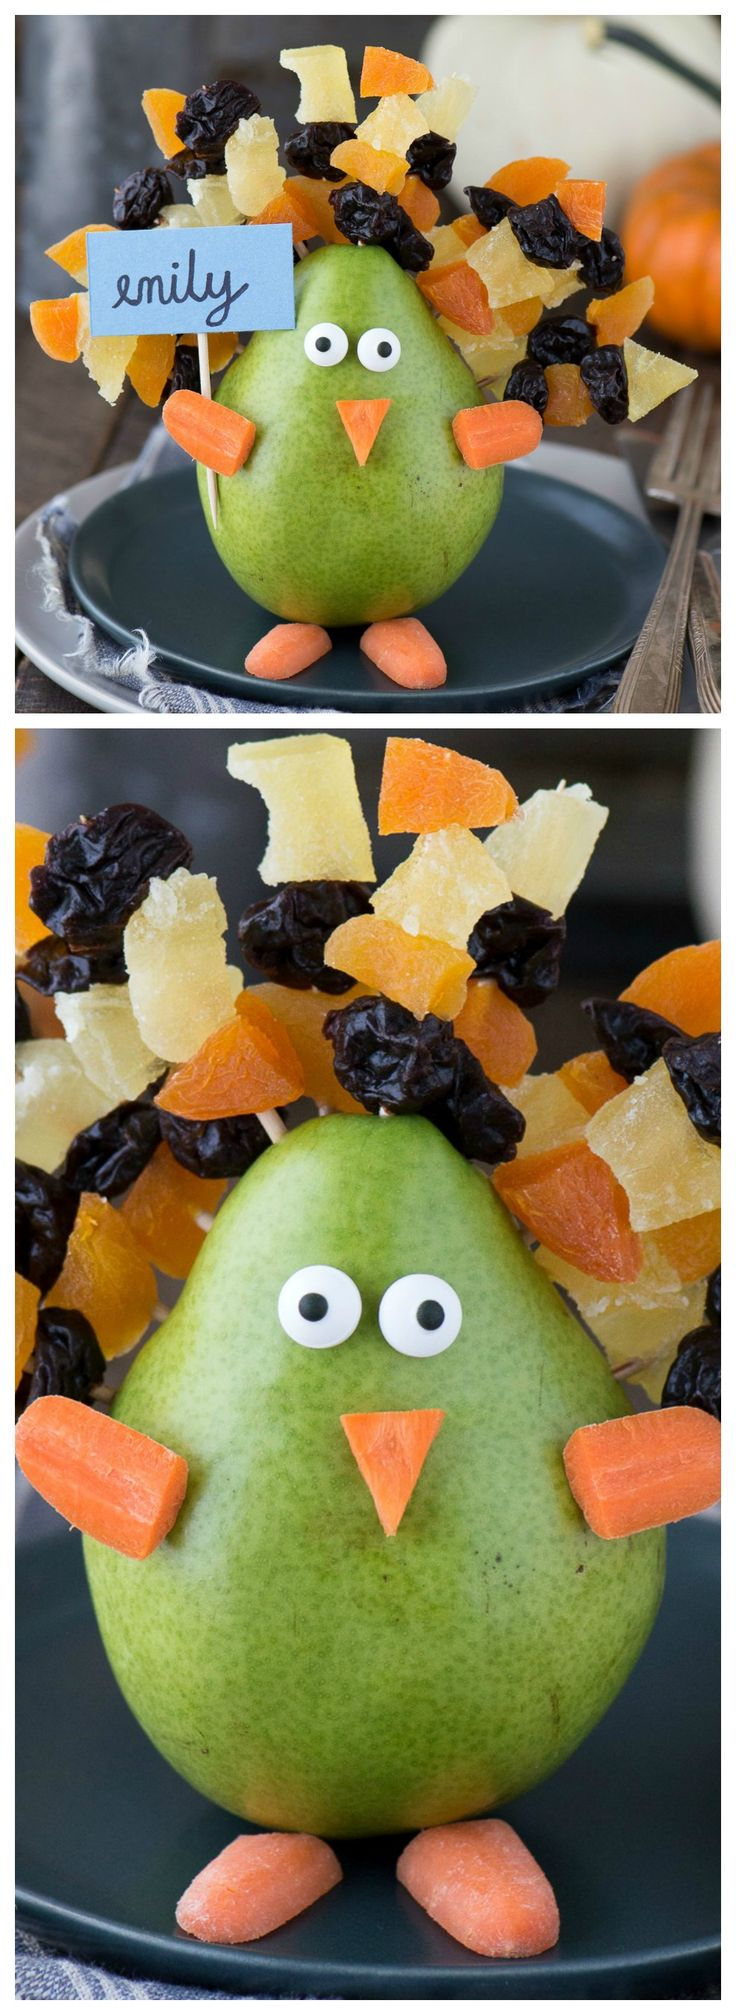 Edible Thanksgiving Turkey Place Card or Centerpiece ~ Adorable and  easy to make with a pear, dried fruit on toothpicks, carrot pieces and candy eye balls!